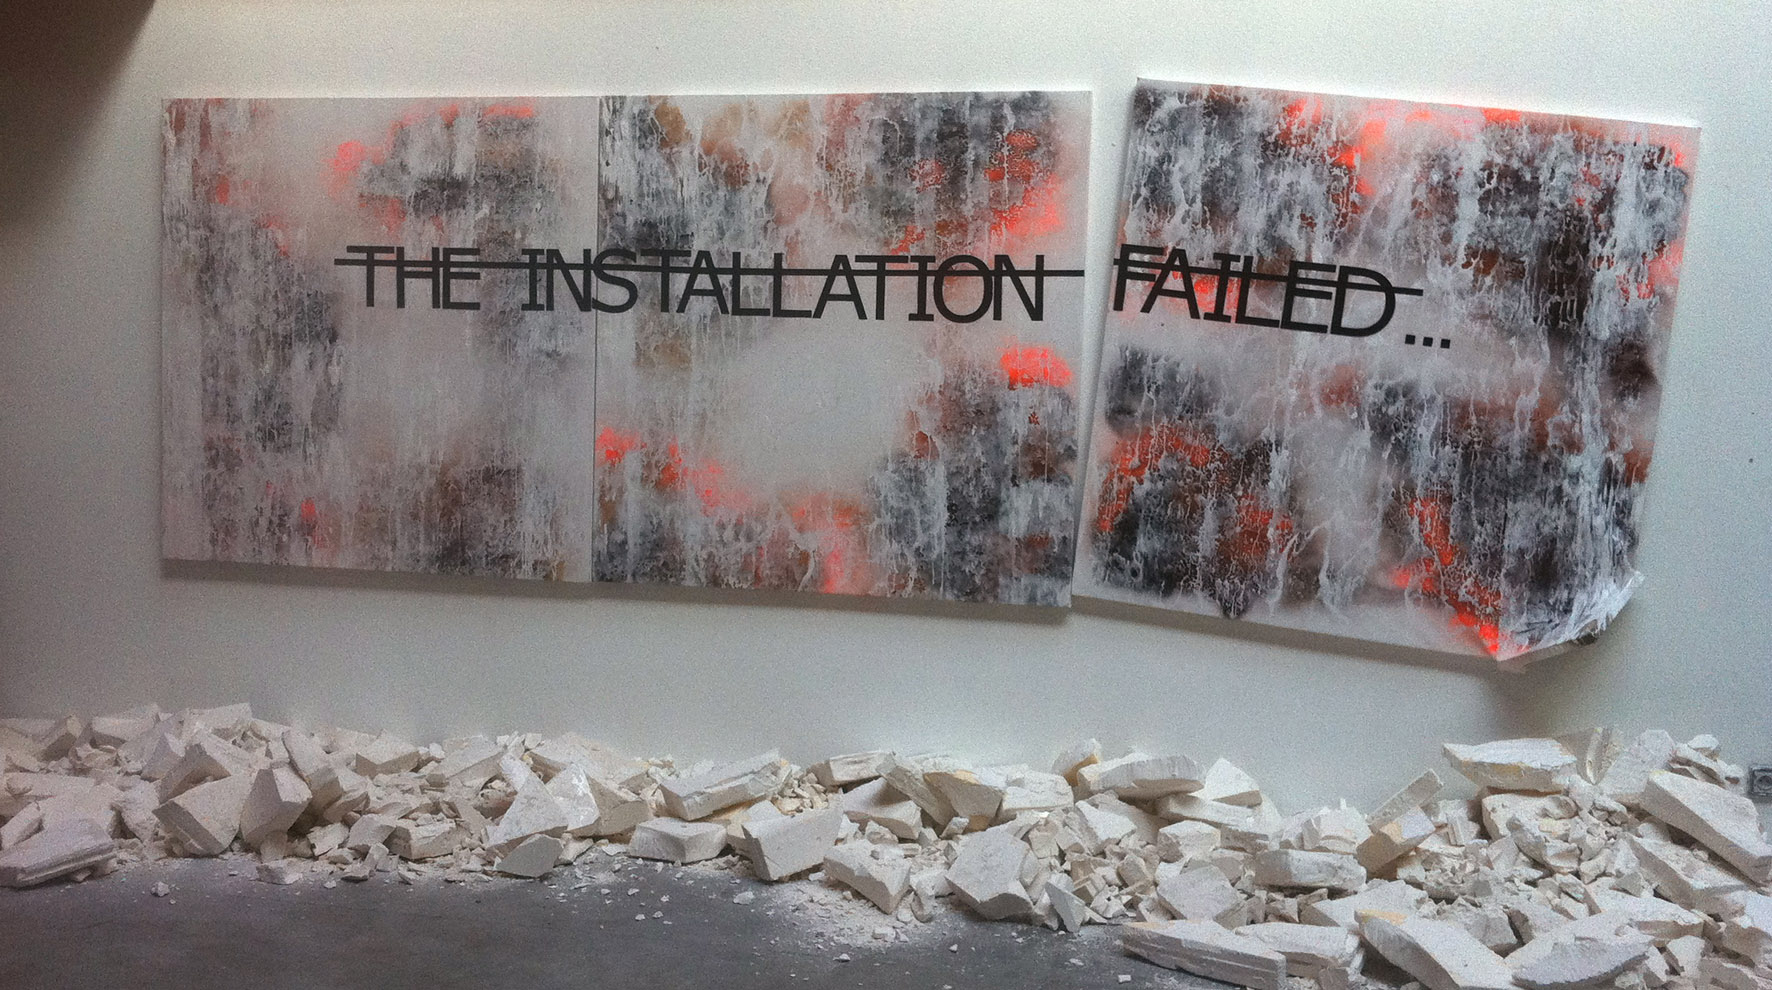 Sans titre (THE INSTALLATION FAILED...), 2012